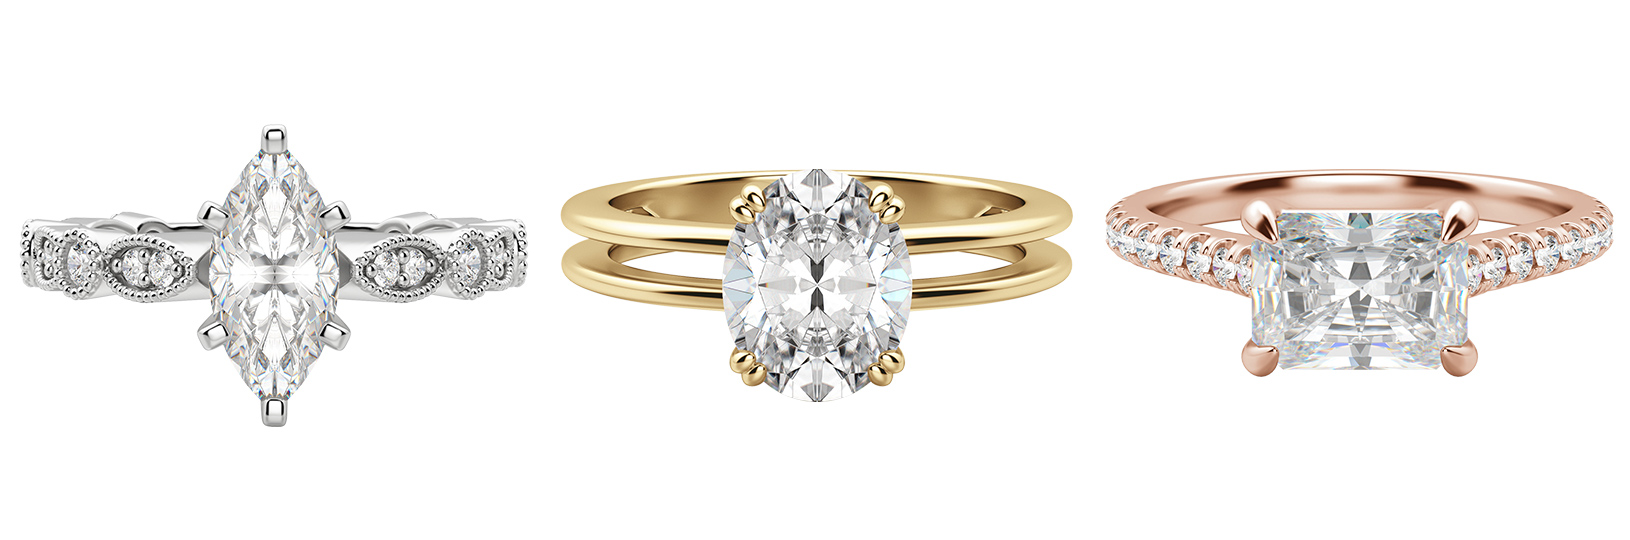 Three classic engagement ring styles featuring marquise, oval and emerald cut stones